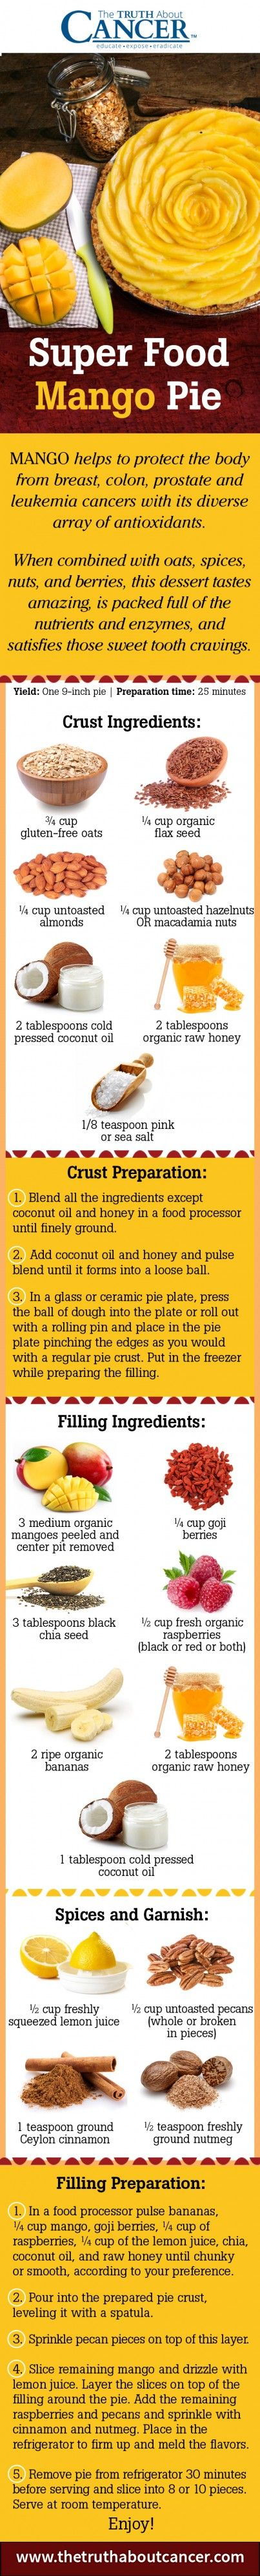 Oh my goodness! Are you looking for a dessert to serve at holiday functions that is not only pretty to look at… but far healthier than typical sugar-filled cakes and pies? Look no further because we have an incredible mango pie recipe above straight from Charlene's kitchen! Click on the image to see the whole recipe and more...